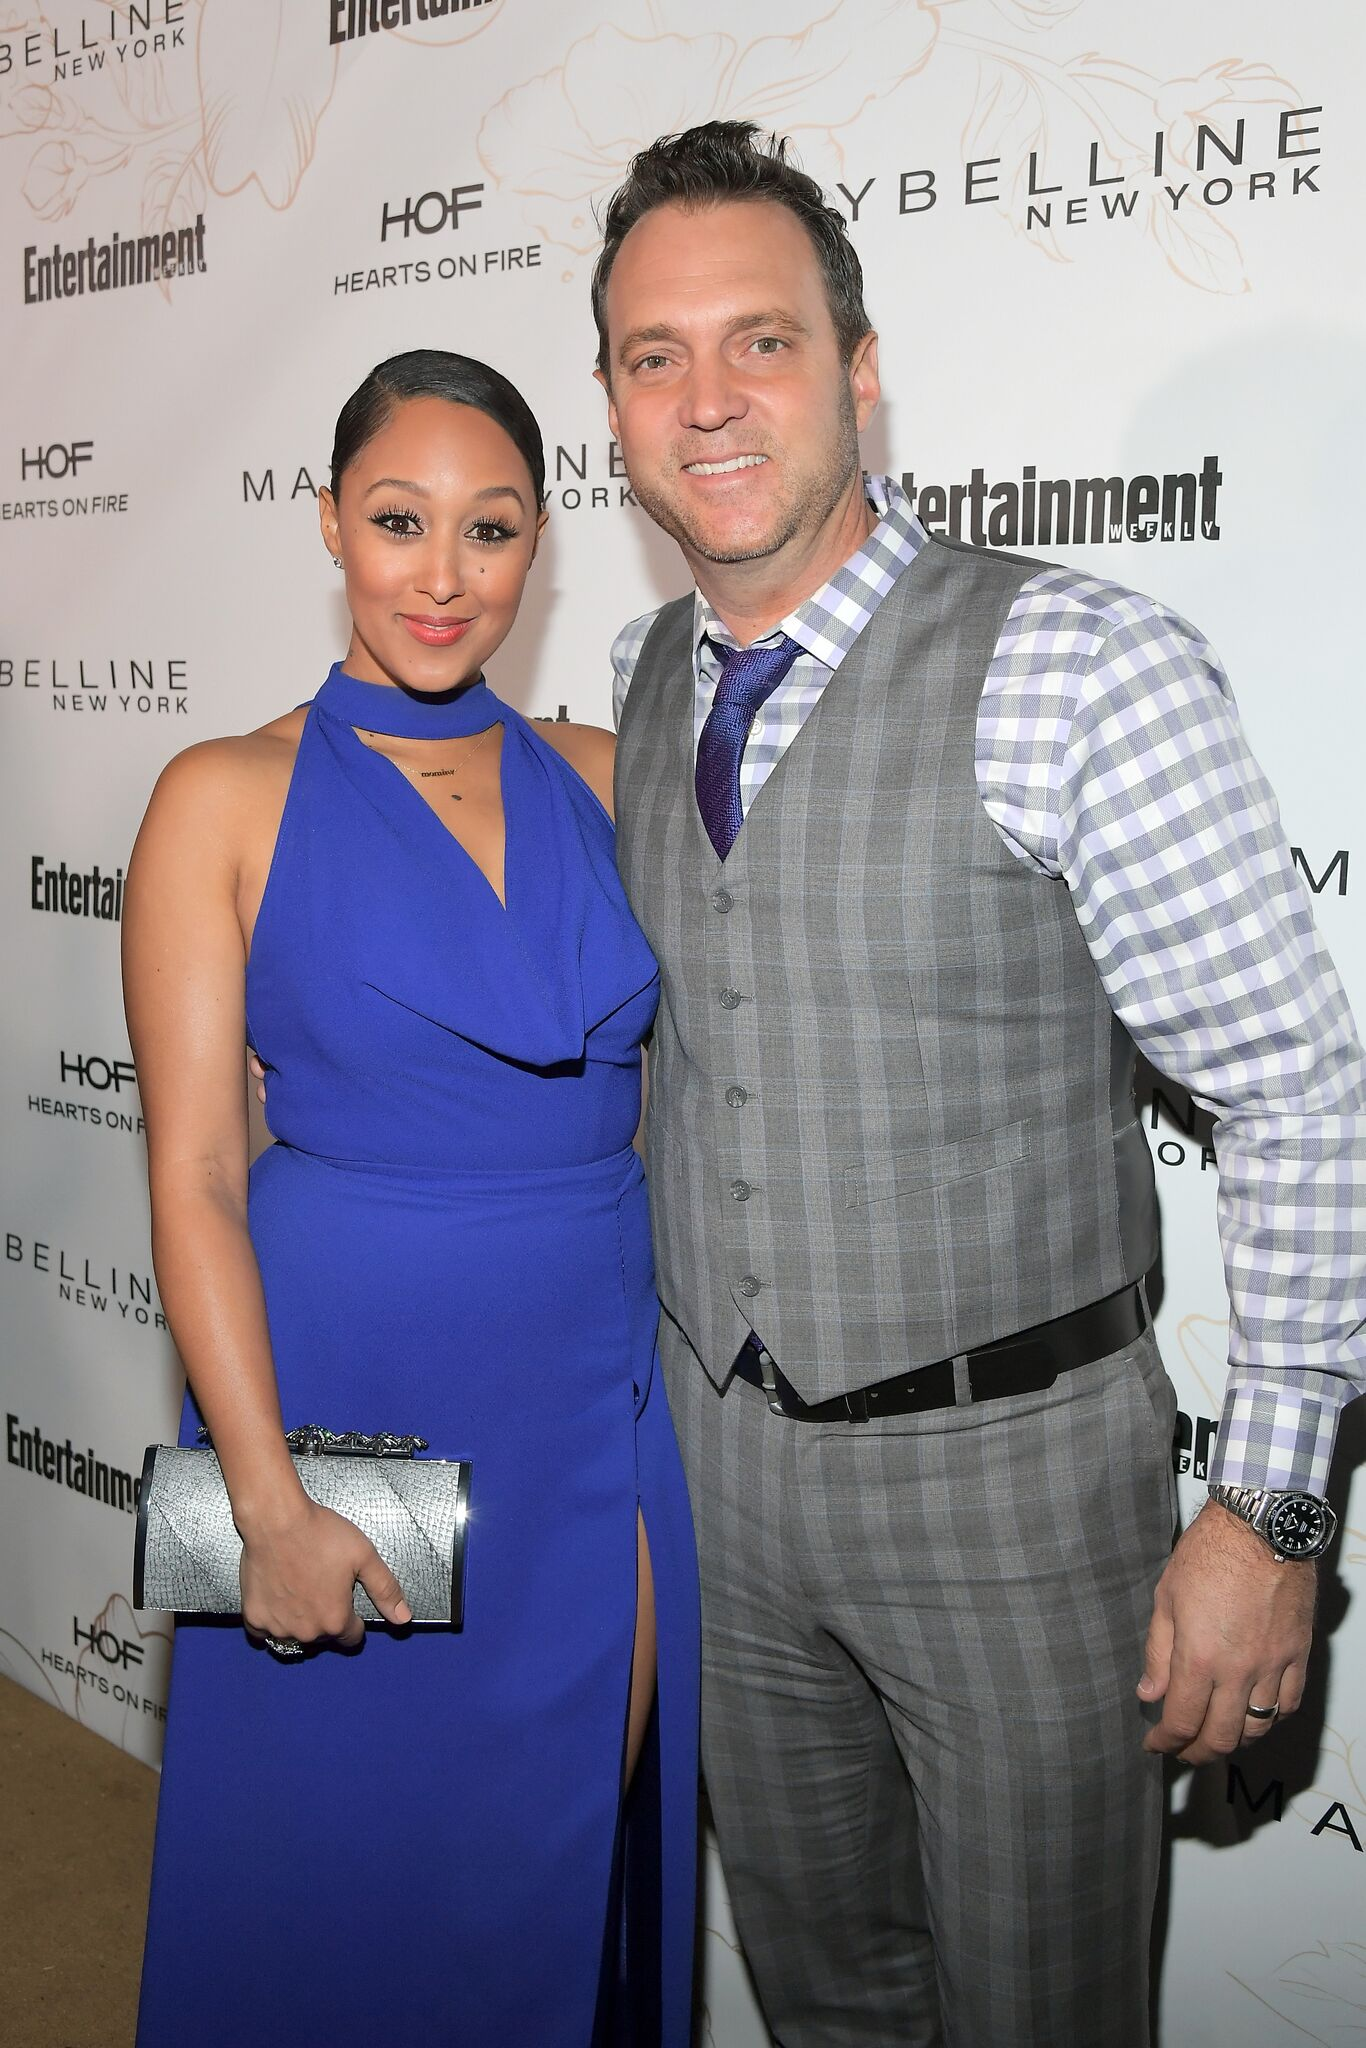 Tamera Mowry and Adam Housley attend a Hearts on Fire event | Source: Getty Images/GlobalImagesUkraine